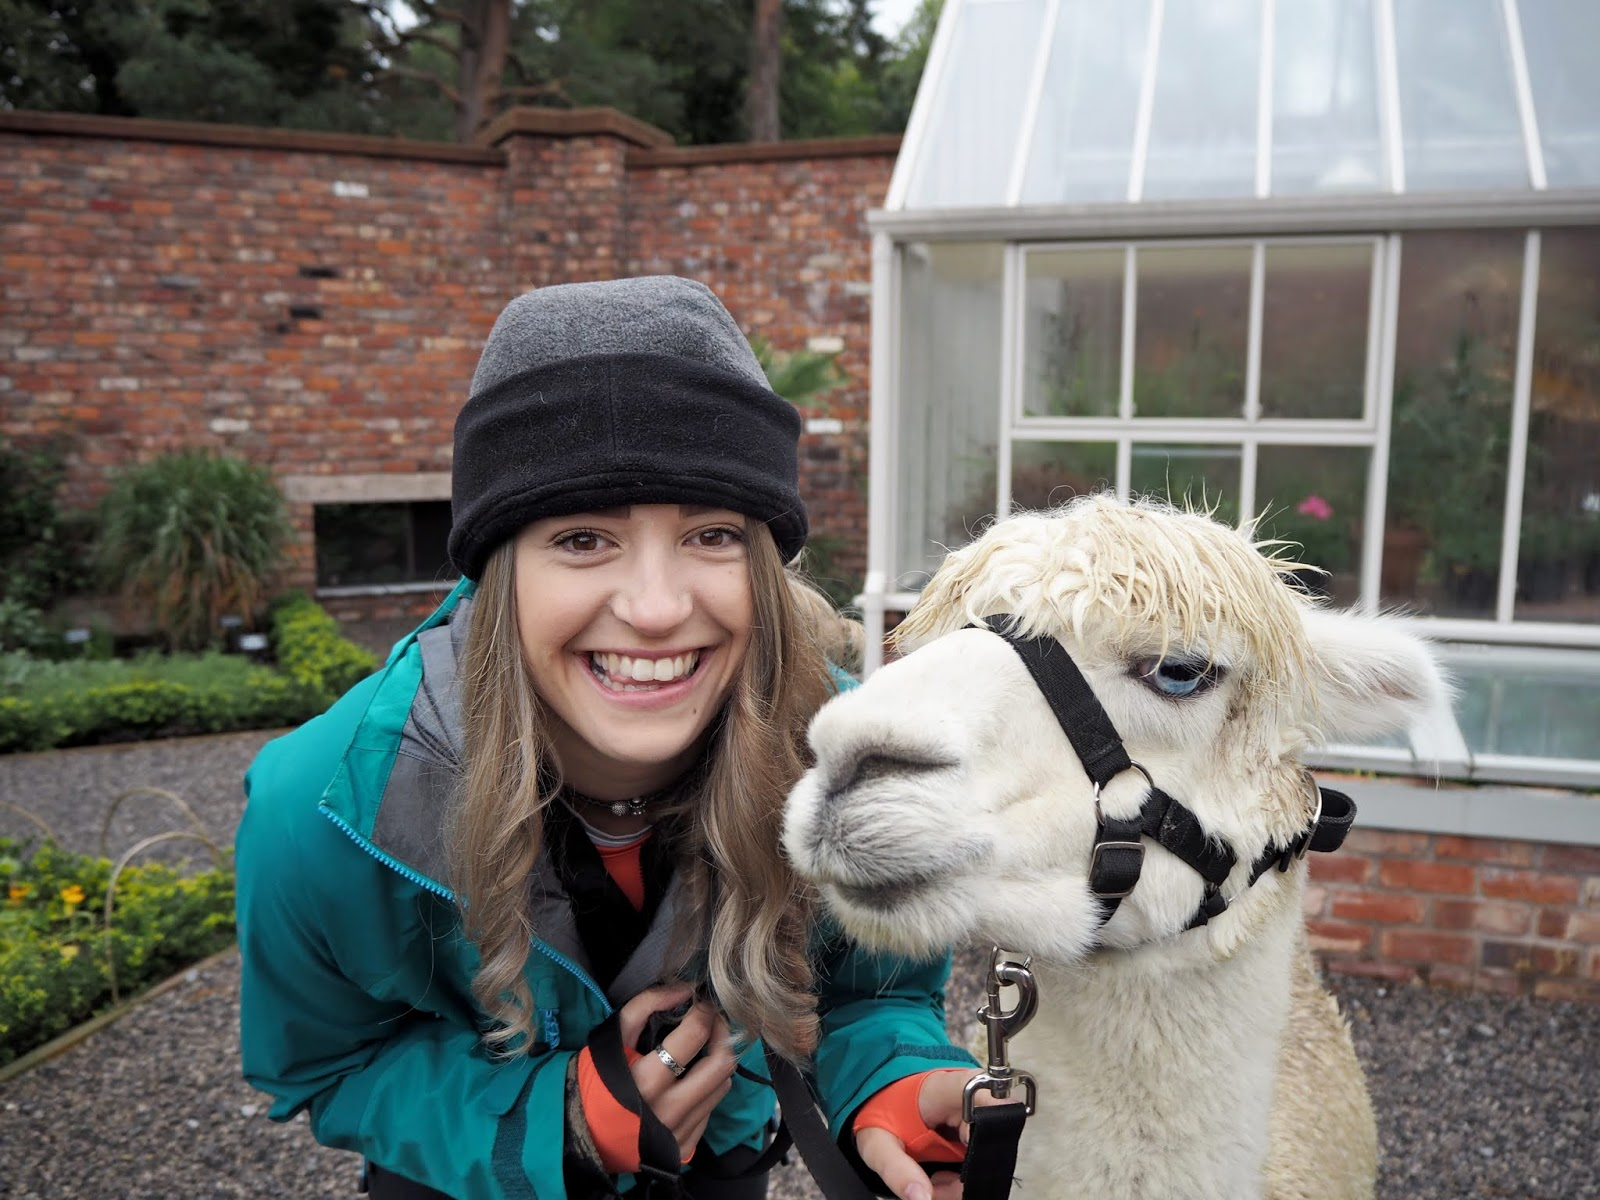 Girl with Alpaca